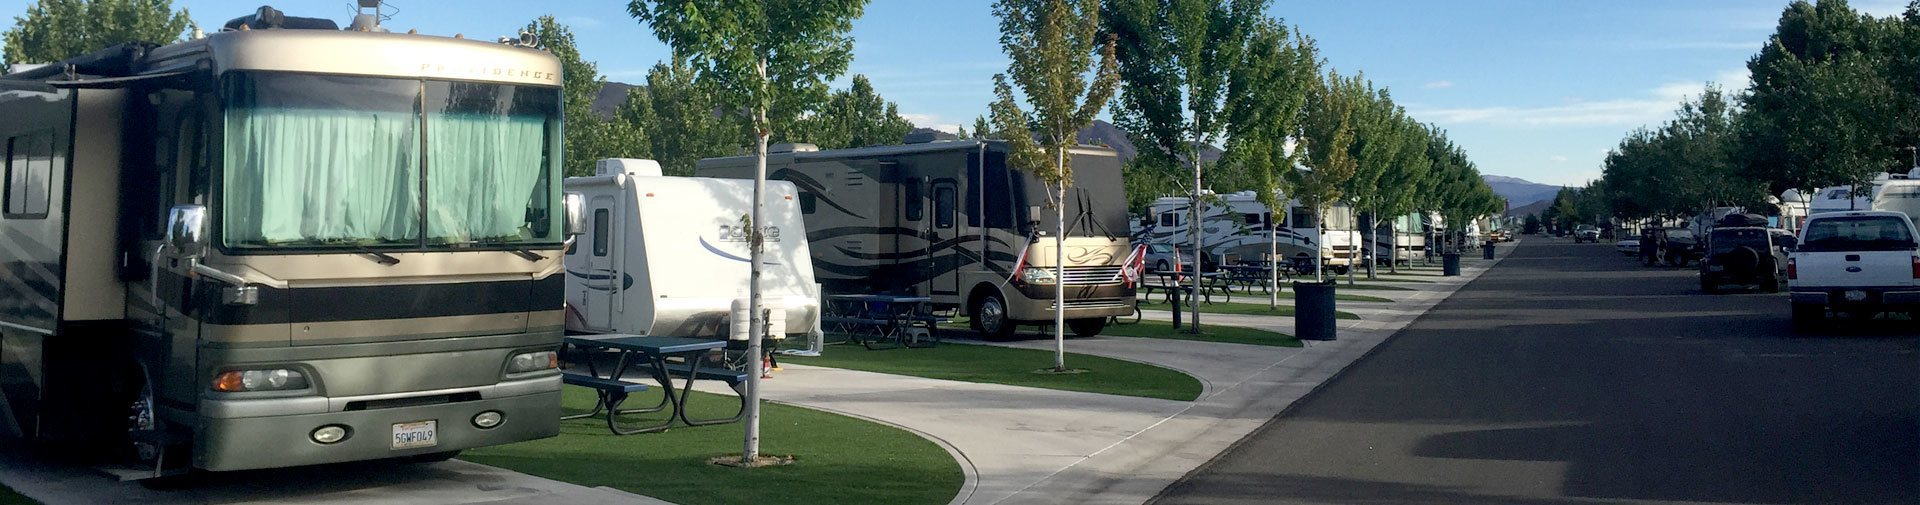 Home Amenities Activities Sparks Marina RV Park